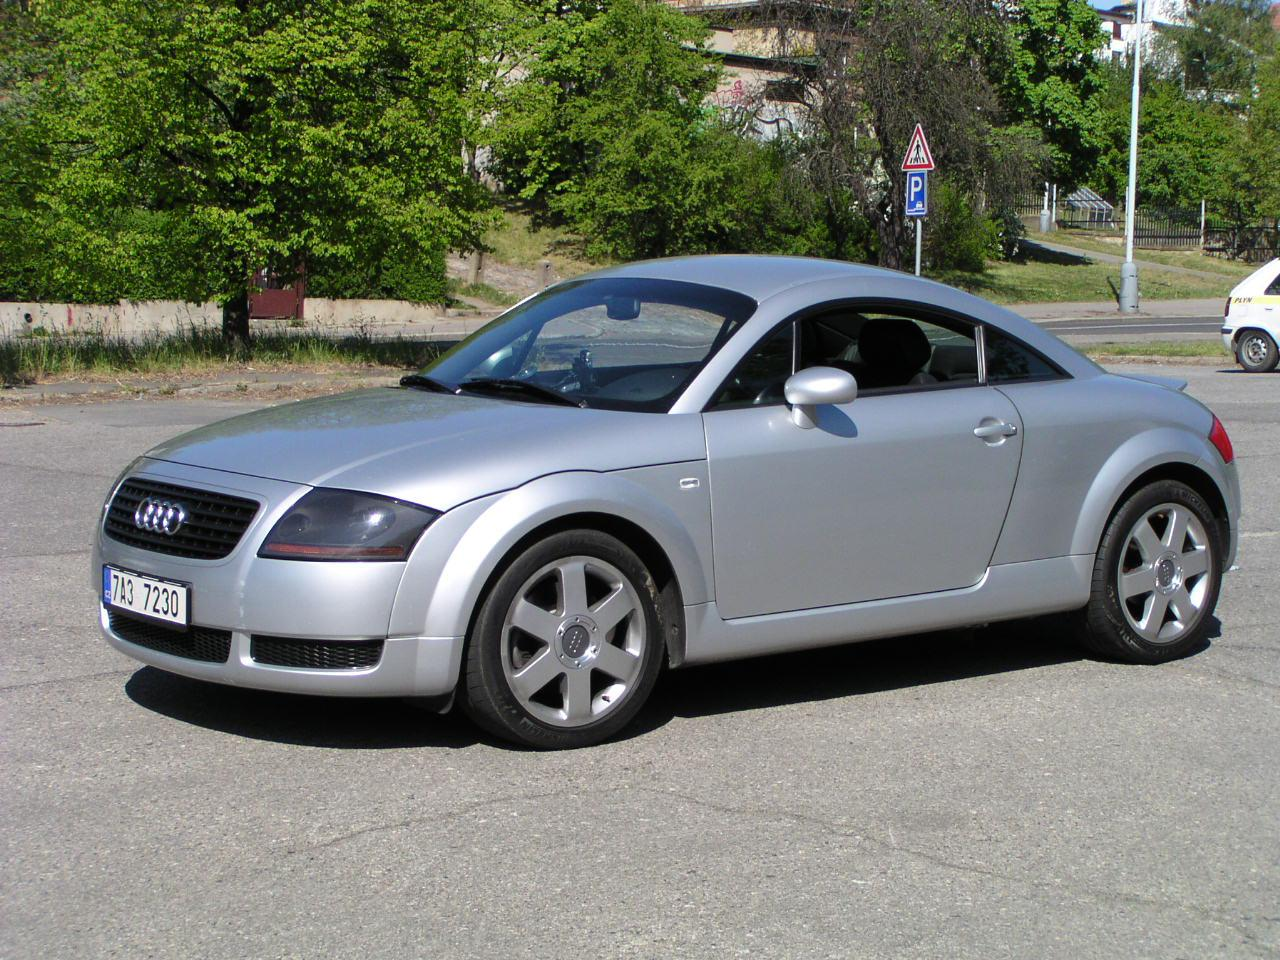 1999 audi tt 8n 1 8 109 cui gasoline 132 kw. Black Bedroom Furniture Sets. Home Design Ideas